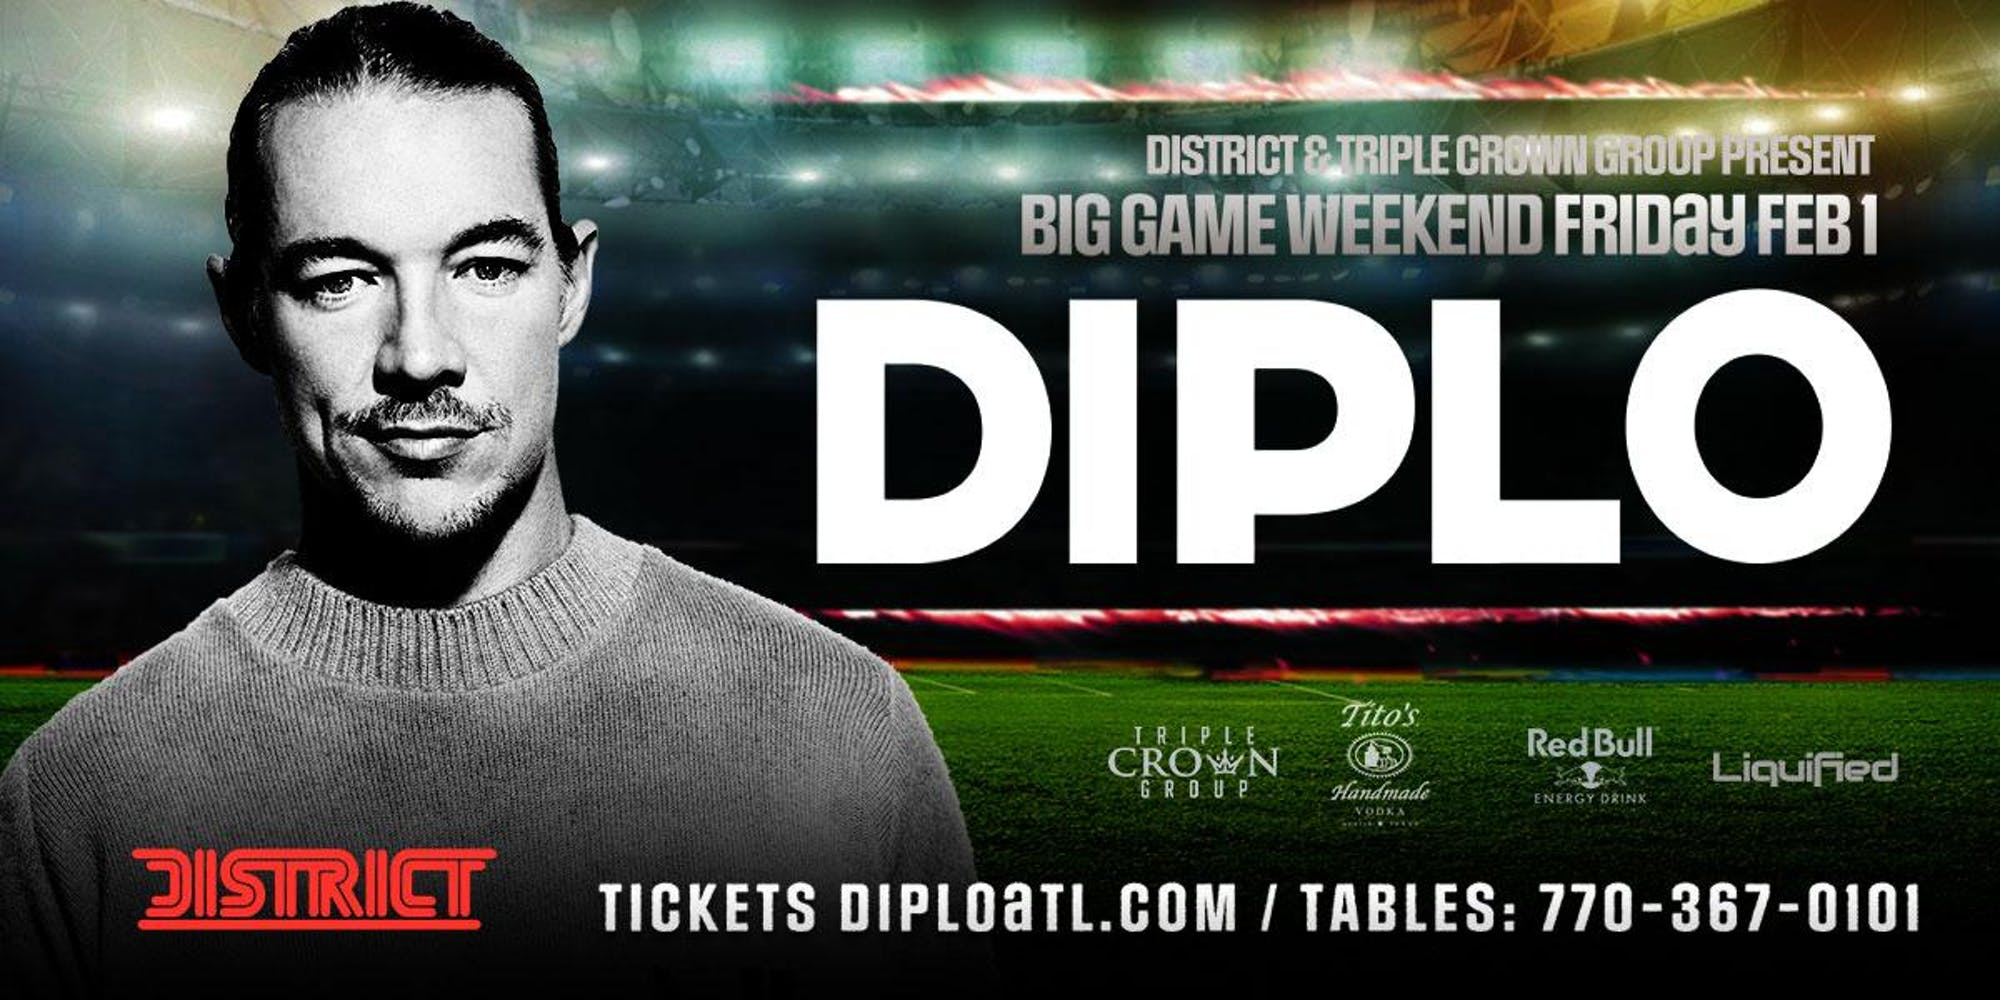 FRIDAY, FEBRUARY 1ST, 2019 | DISTRICT DIPLO